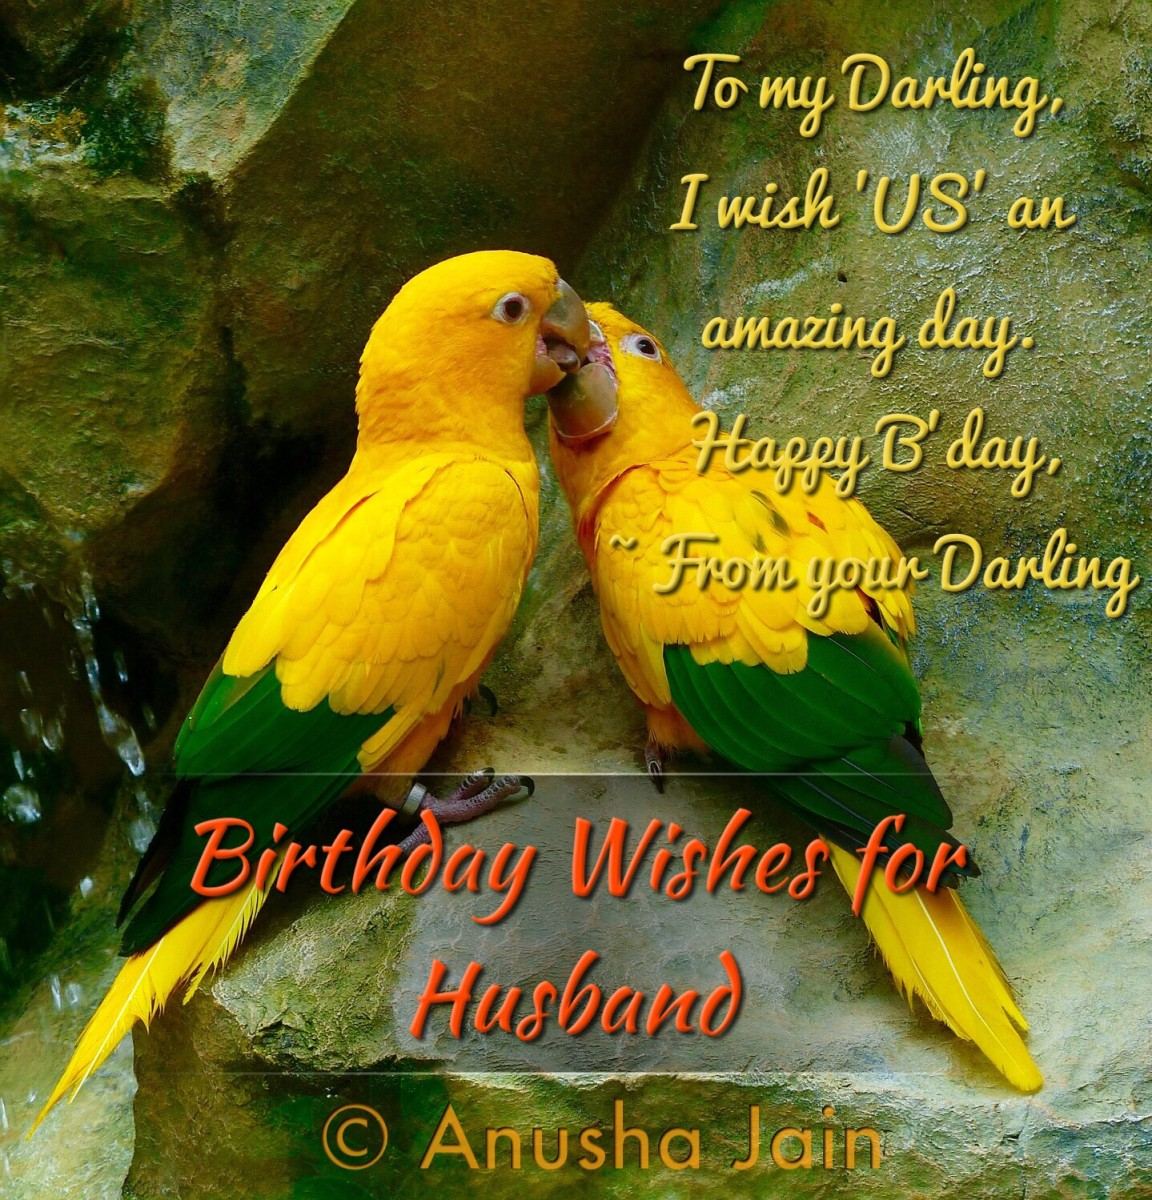 Happy Birthday Husband - Funny and Sincere Romantic Poems, Quotes, Wishes